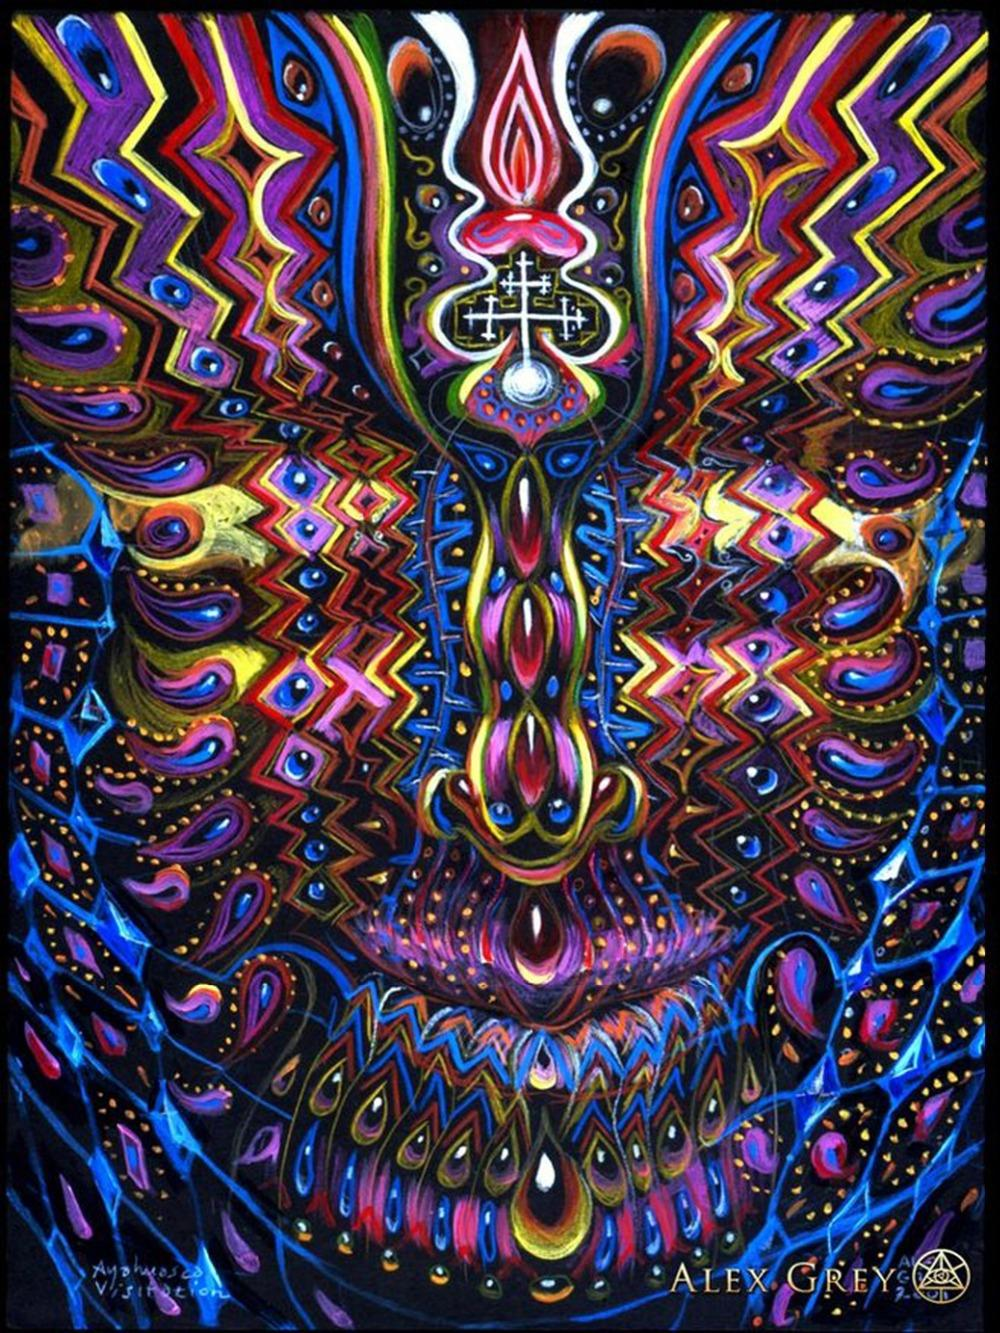 . poster 32x24 17x13 Trippy Alex Grey Wall Poster Print Home Decor Wall  Stickers poster Decal  061